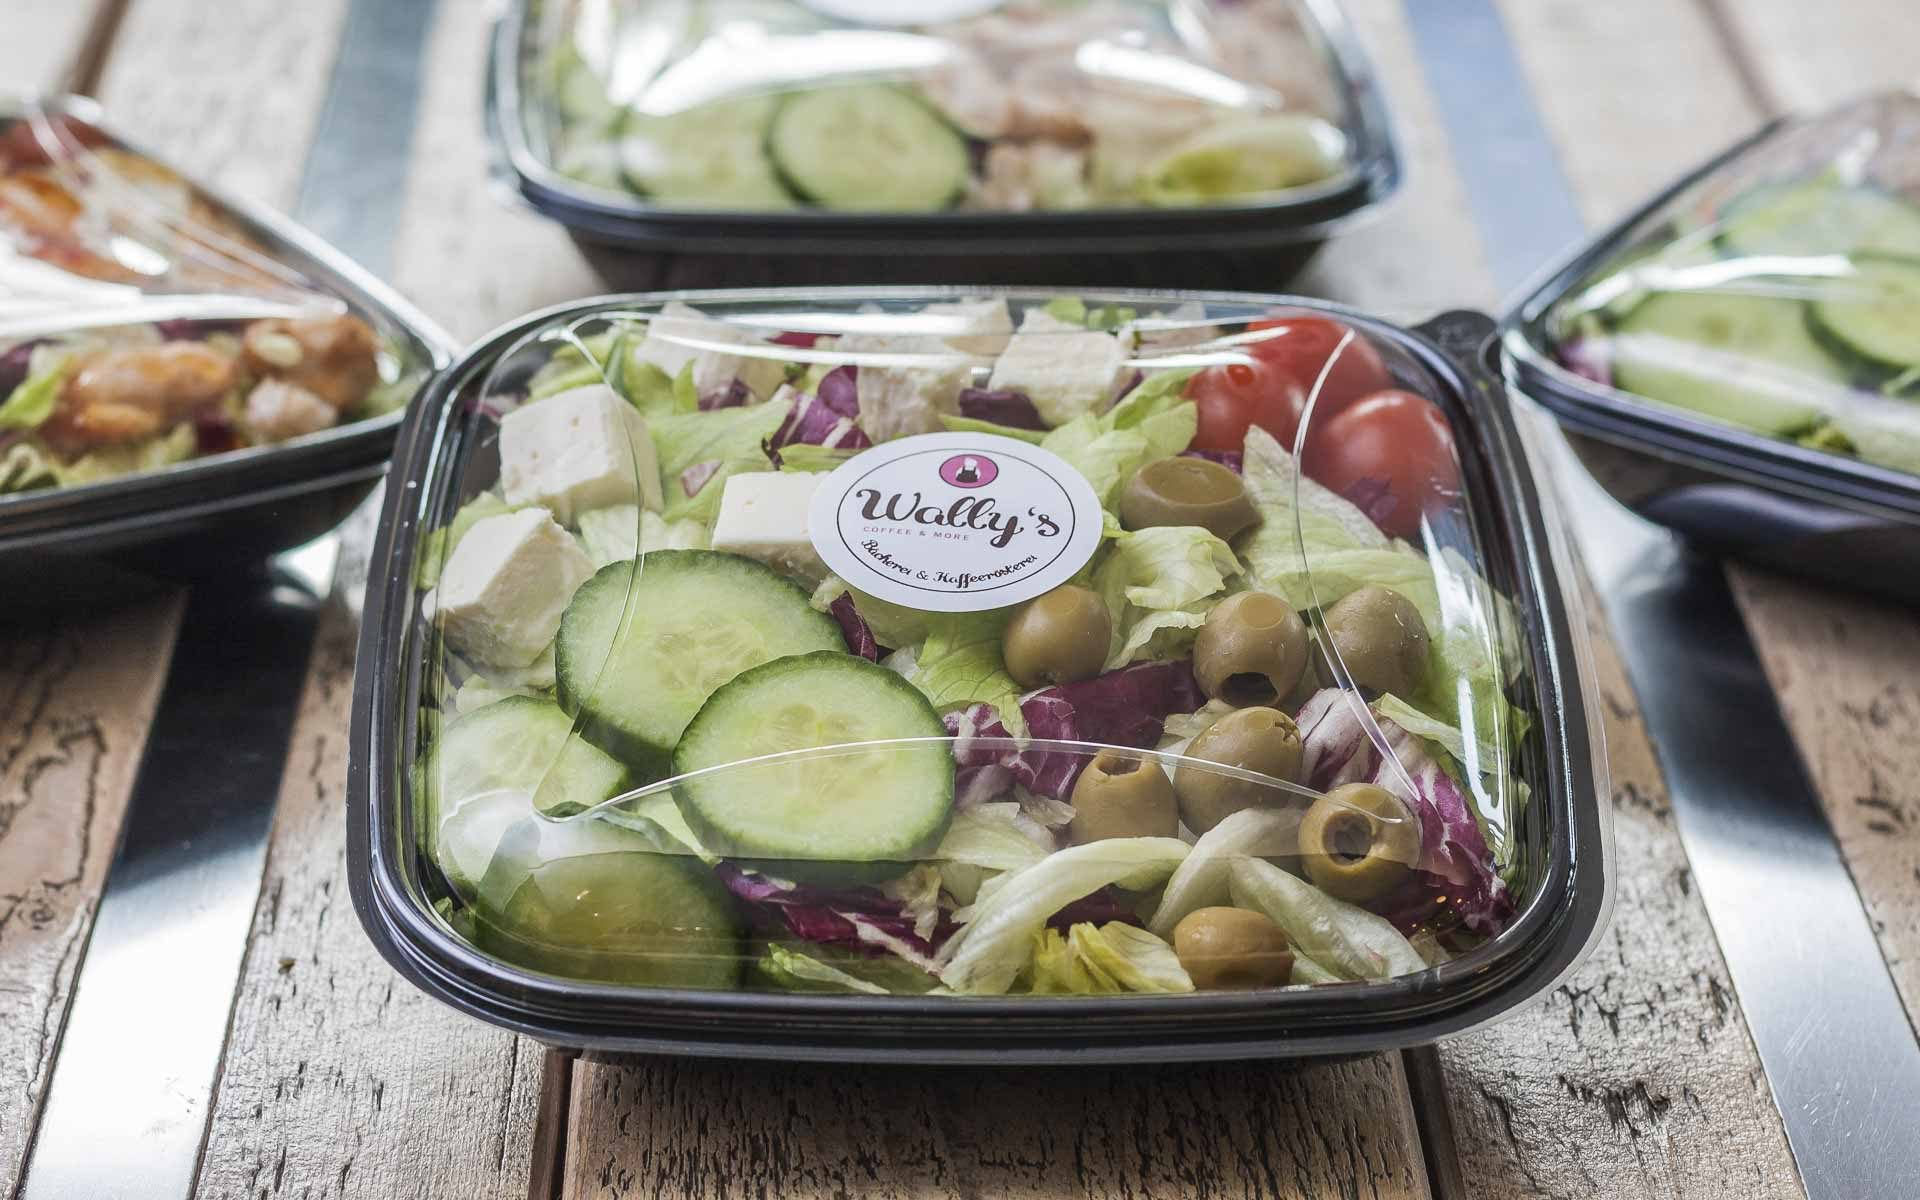 Wally's – Feta Käse Salat to-go